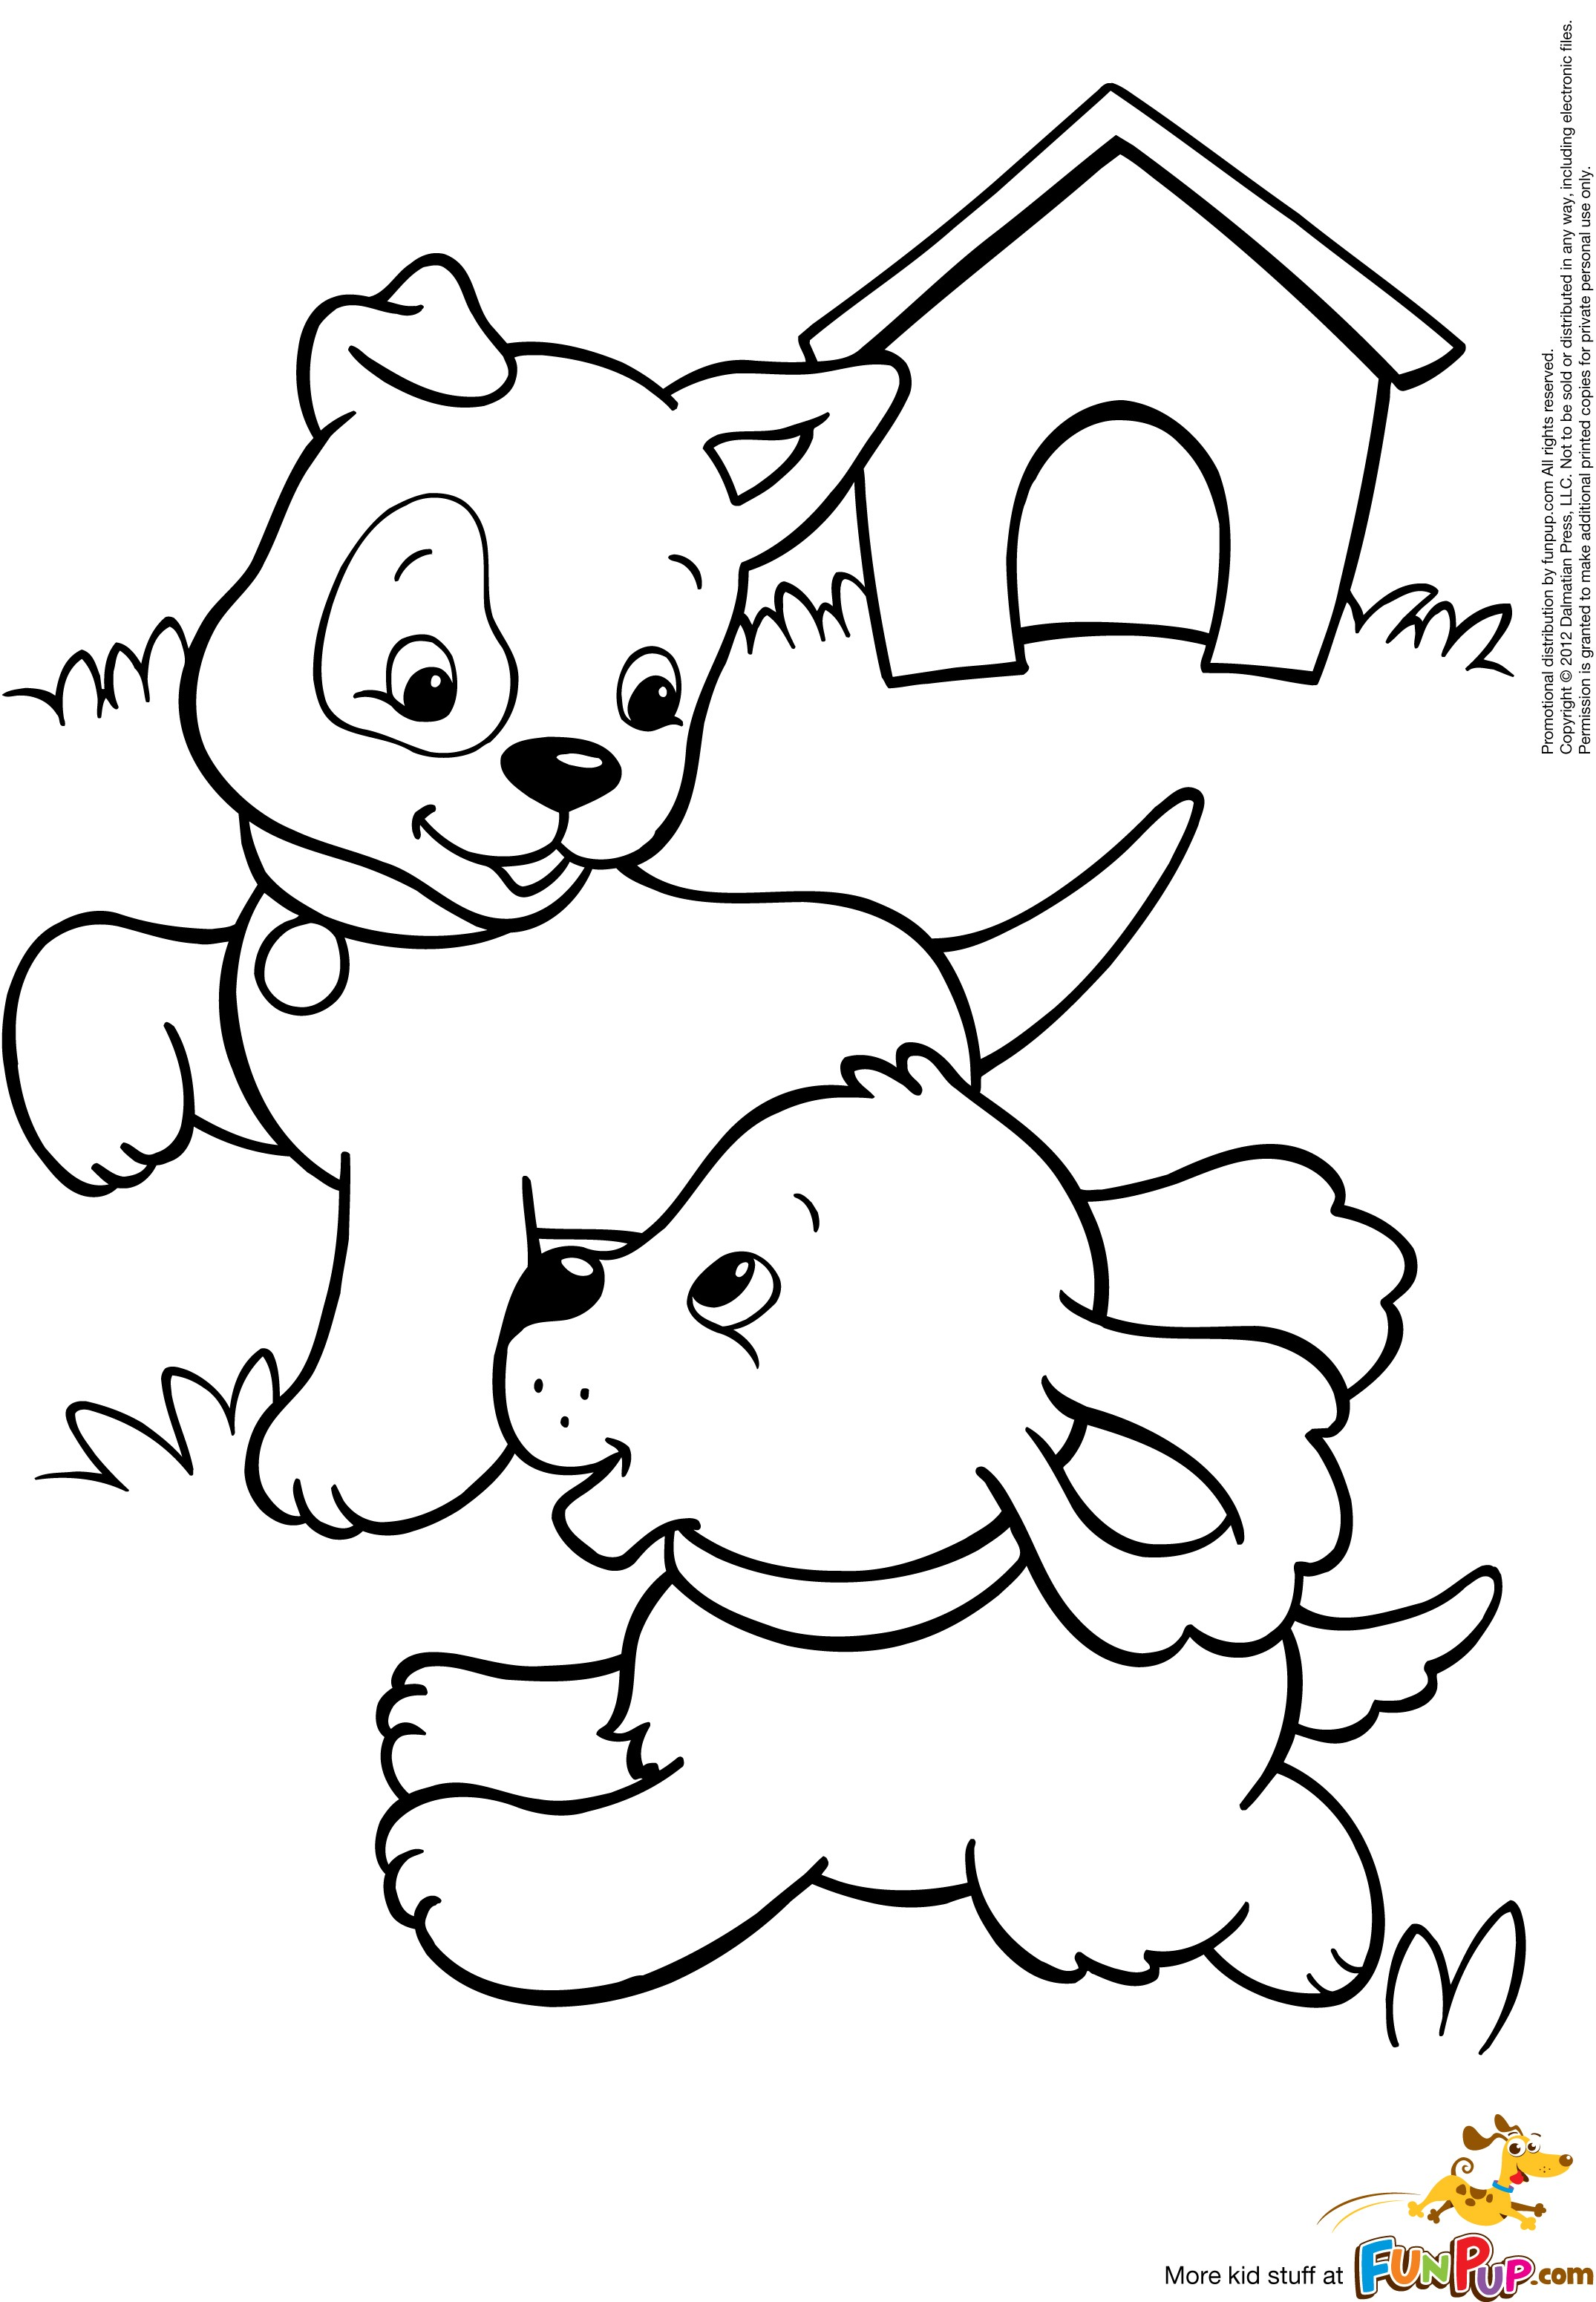 puppy colouring pages cartoon puppy coloring pages cartoon coloring pages colouring puppy pages